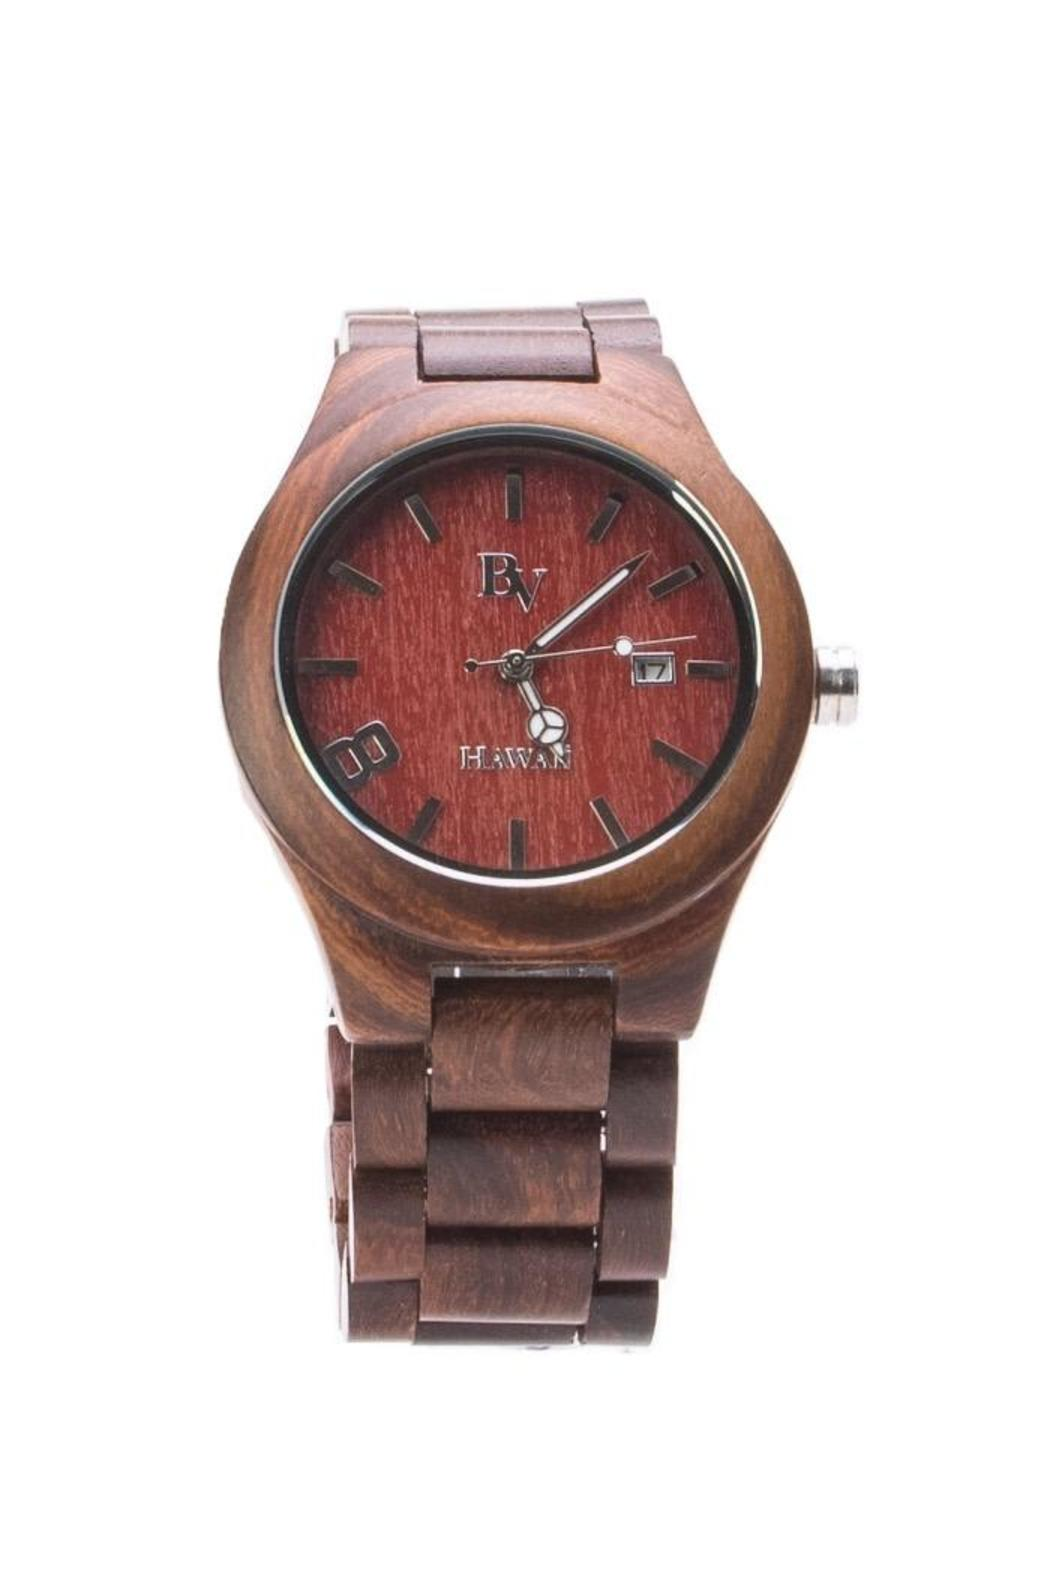 plated approx lot bamboo steel quartz sandalwood sold maple unisex business wood jewelry watch inch length glass natural pc by stainless newest redear watches with